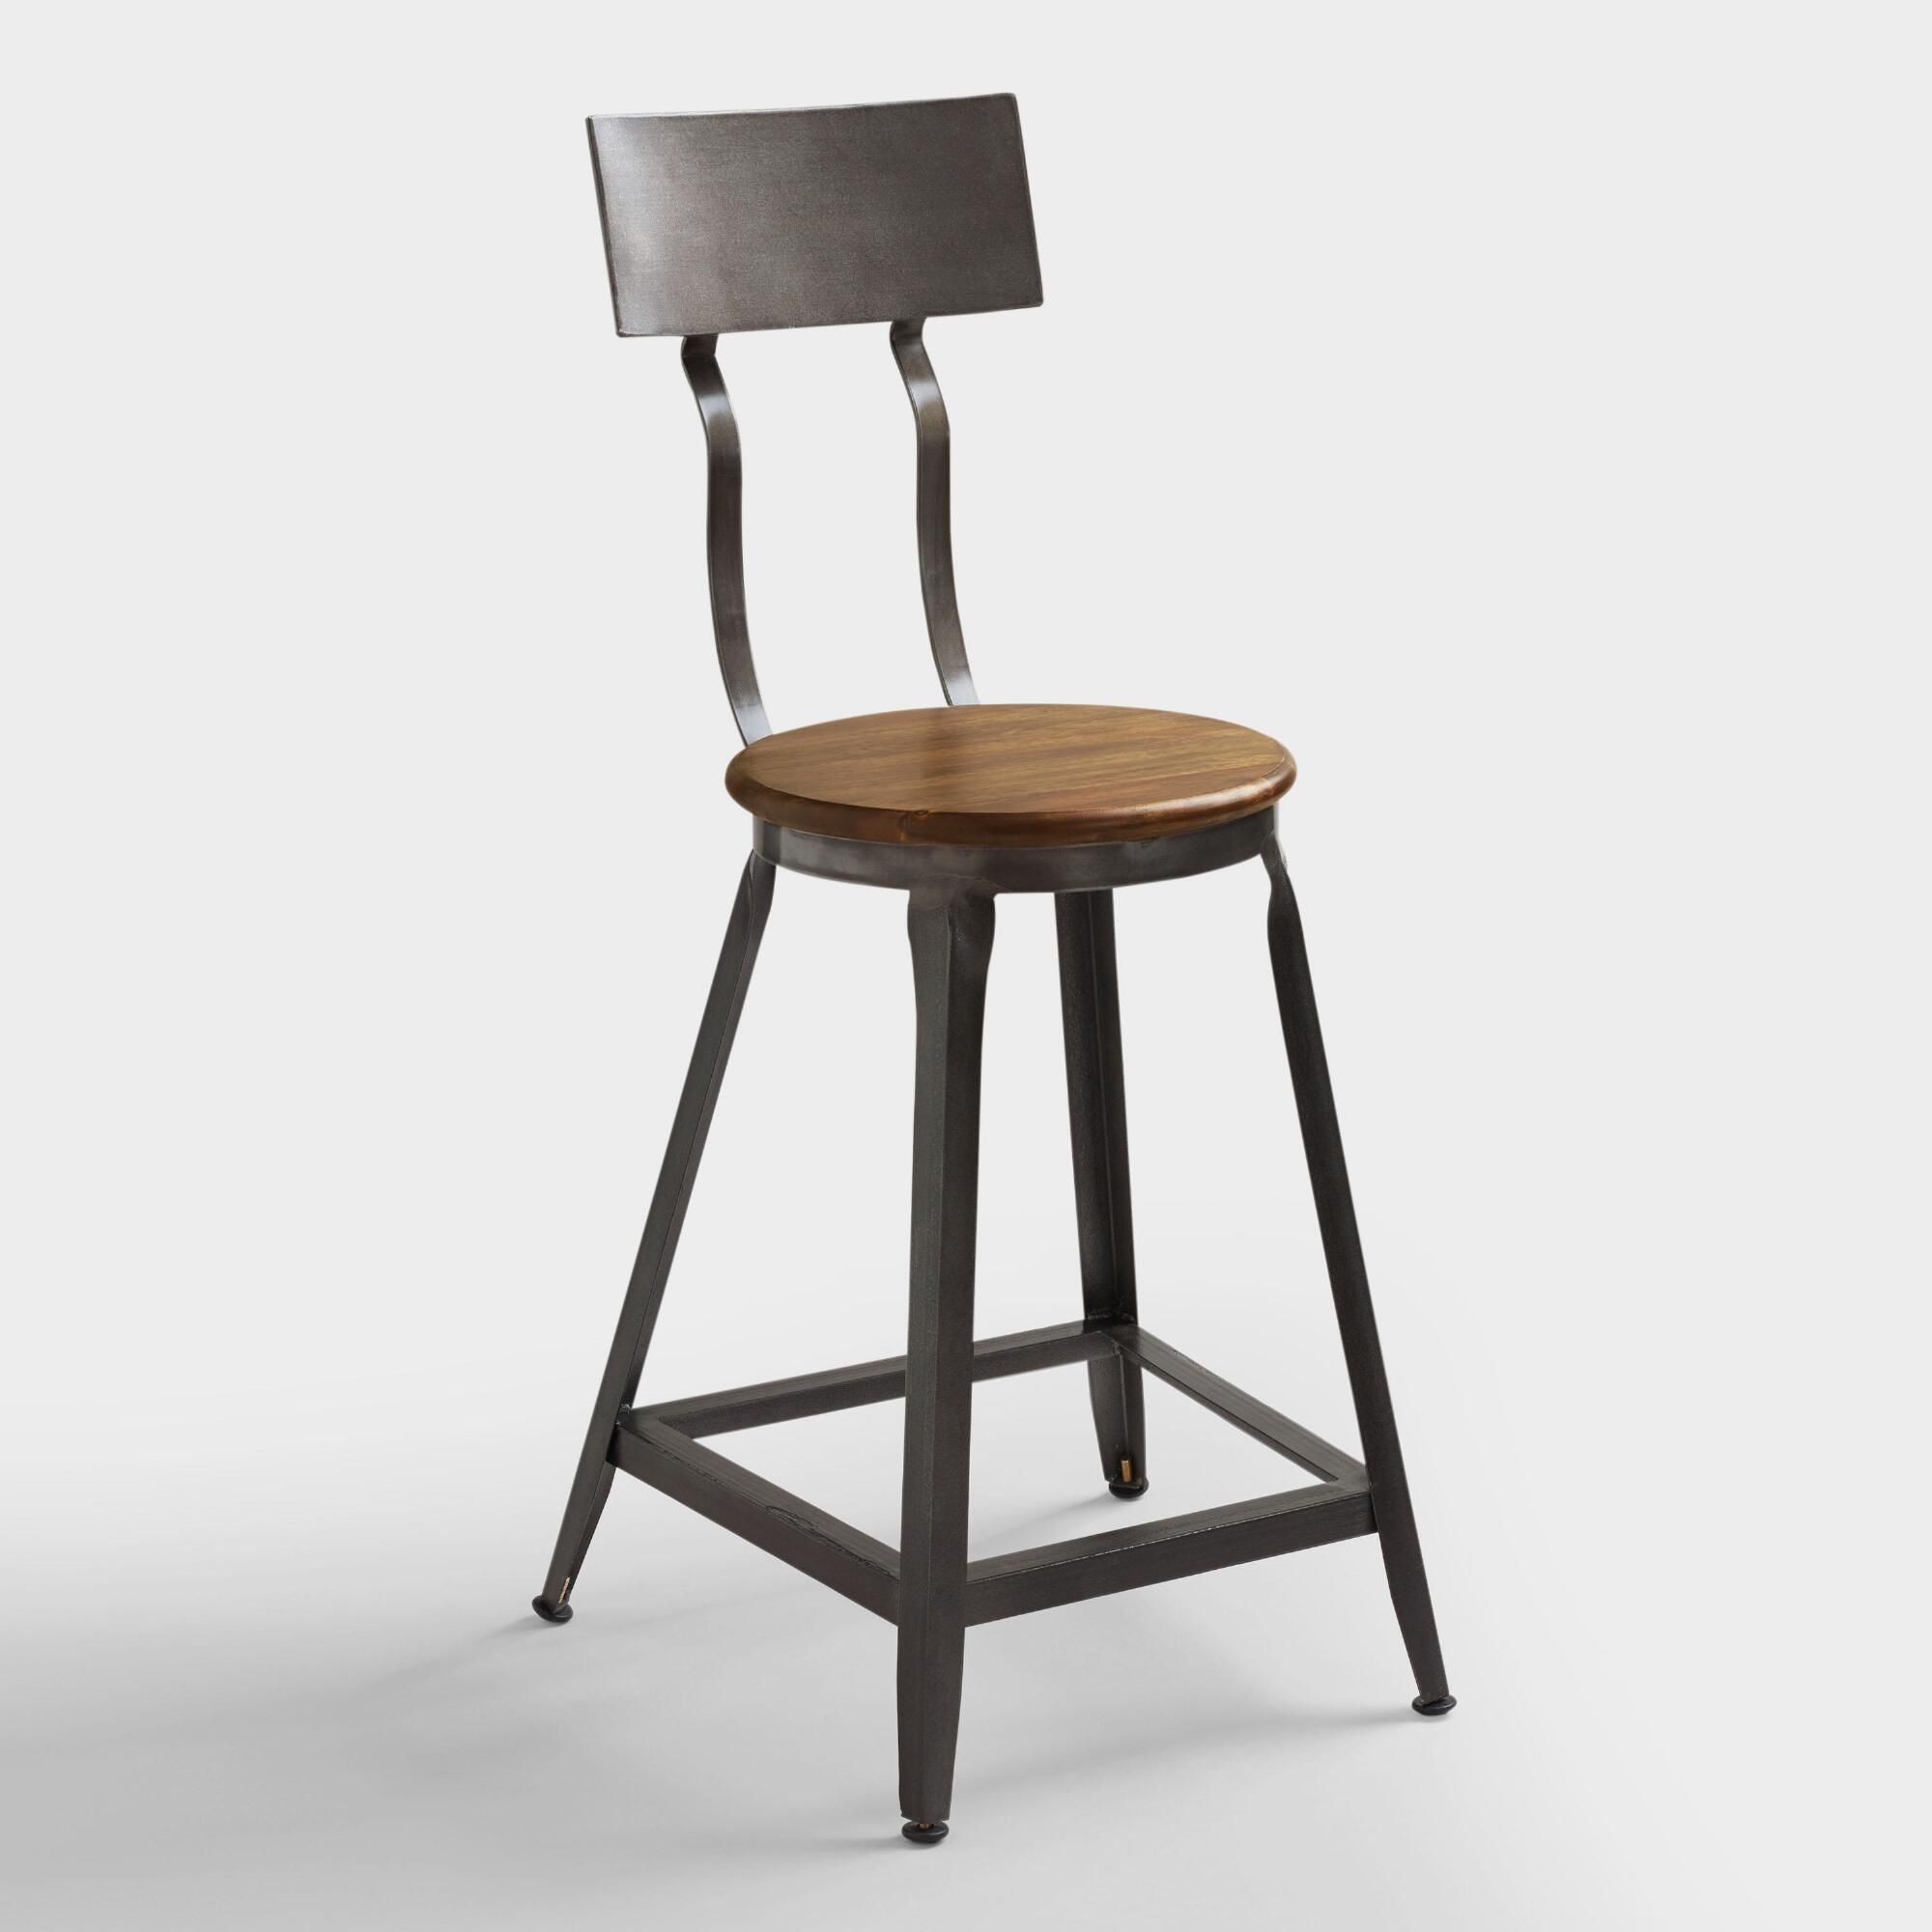 furniture back room stool stools hooker dining curata iteminformation bar dkw upholstered silo